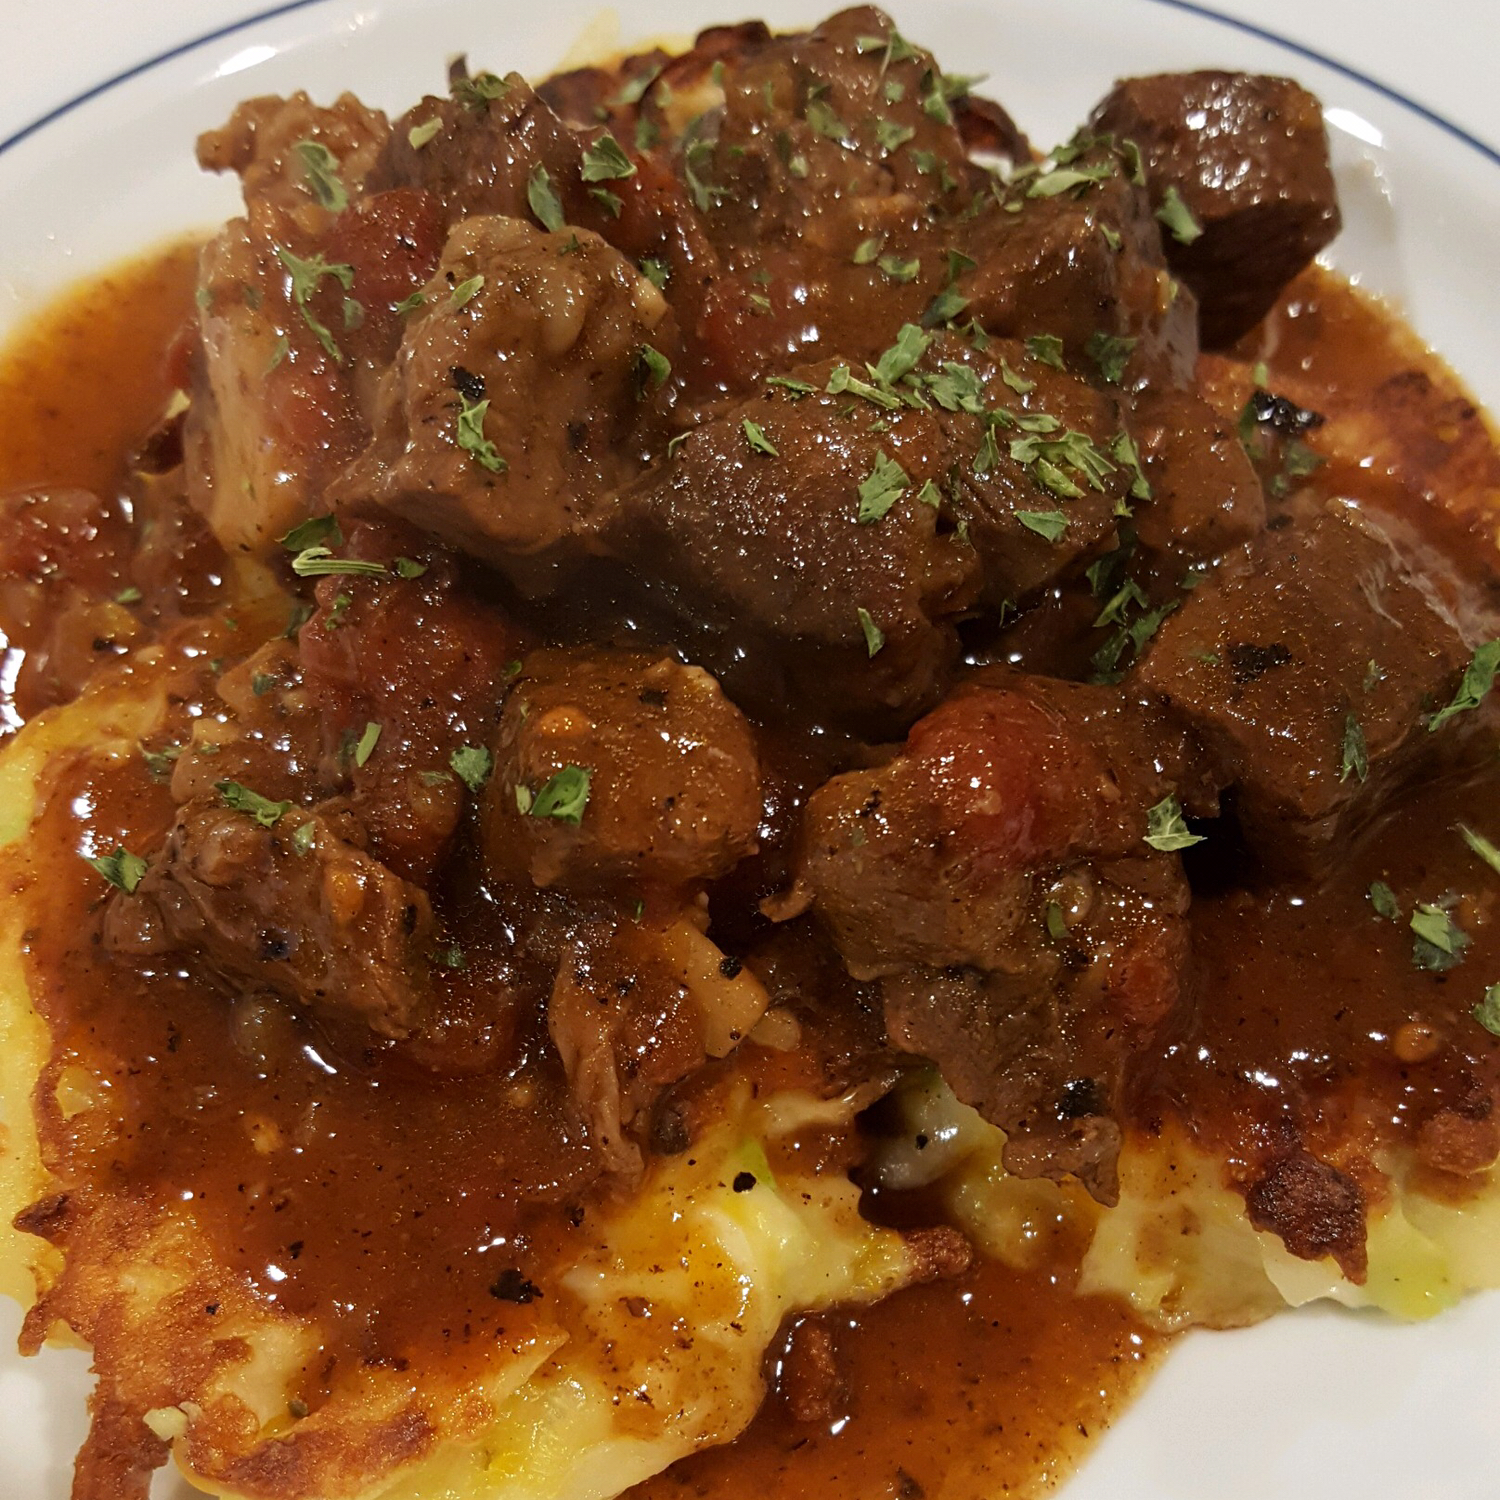 Braised Beef with Shallots and Mushrooms Aaron A